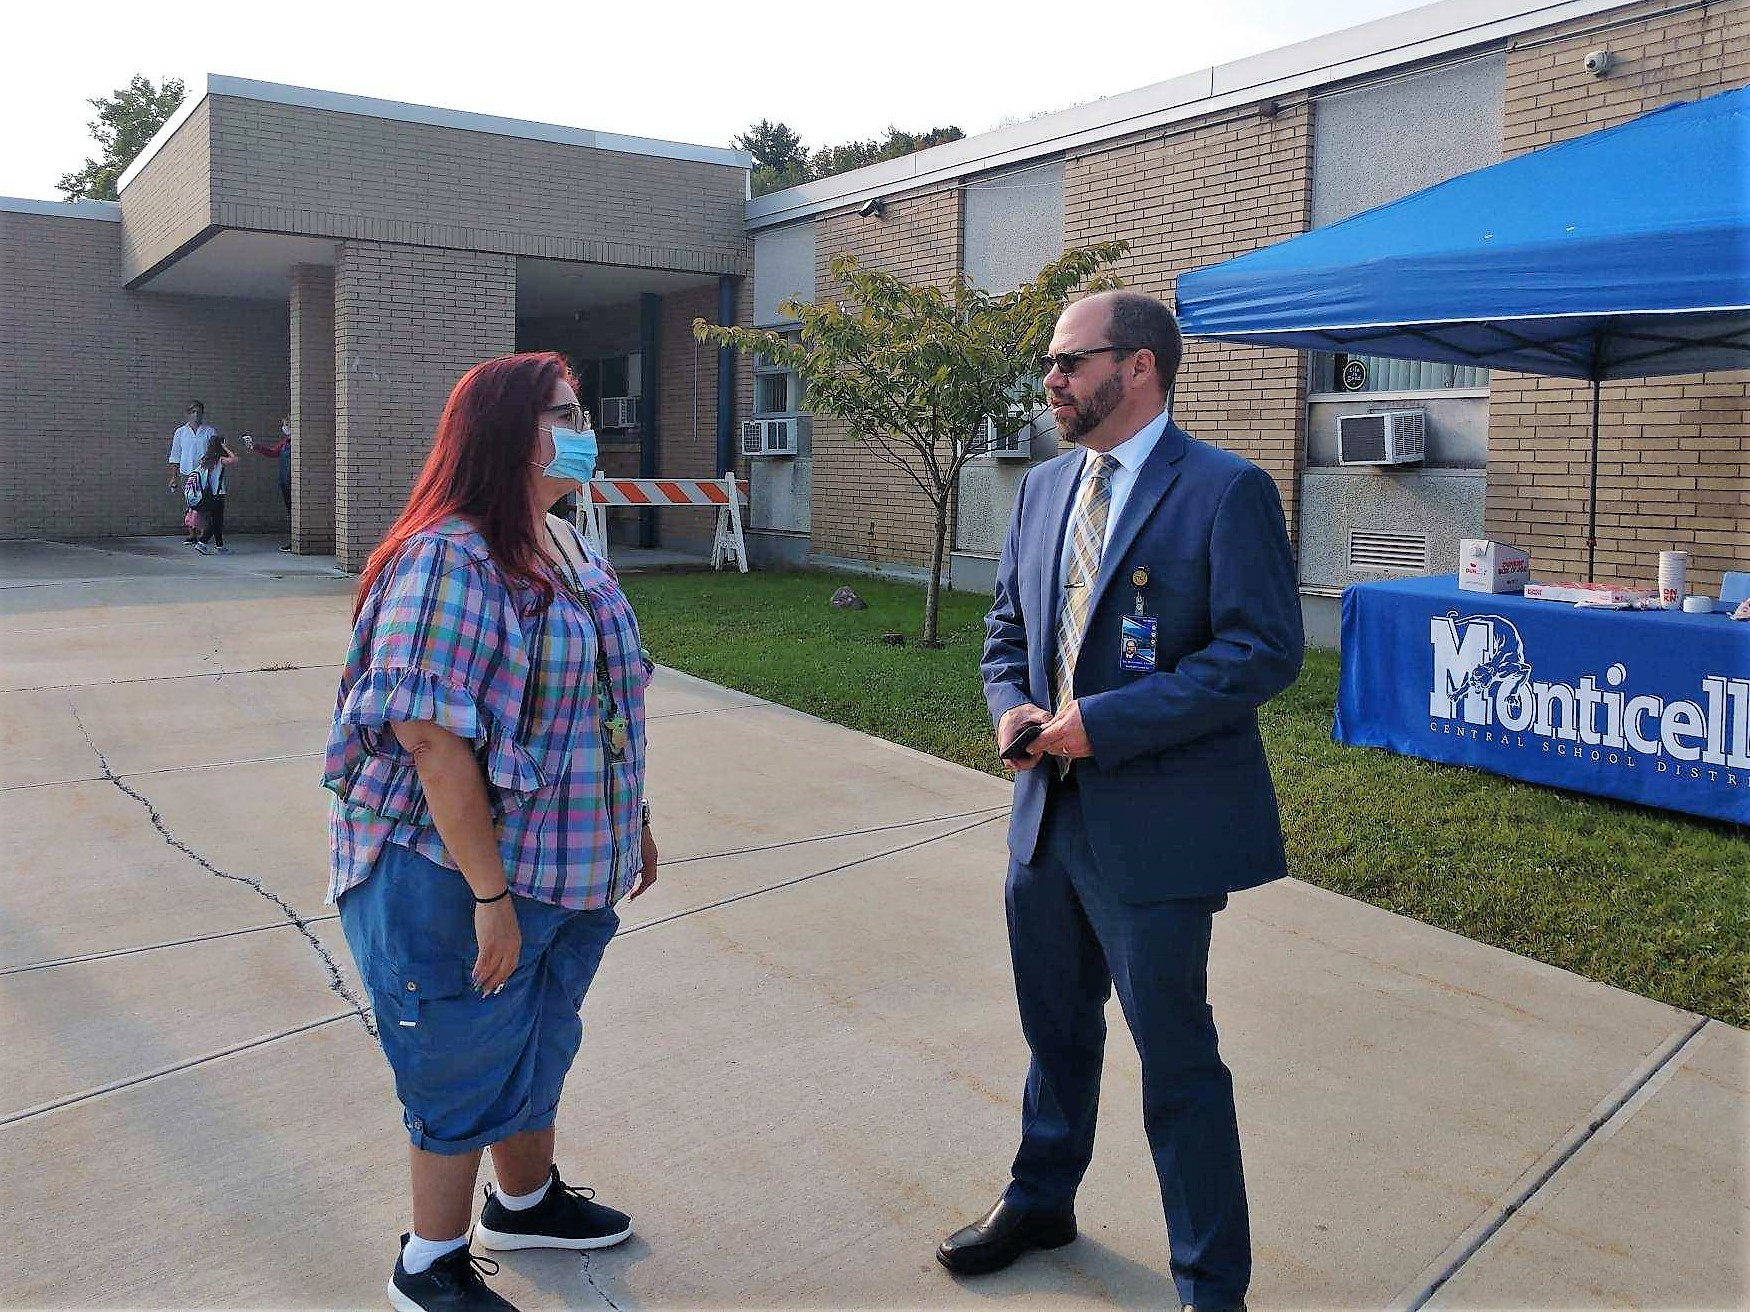 superintendent evans is outside of a school and speaking with a woman